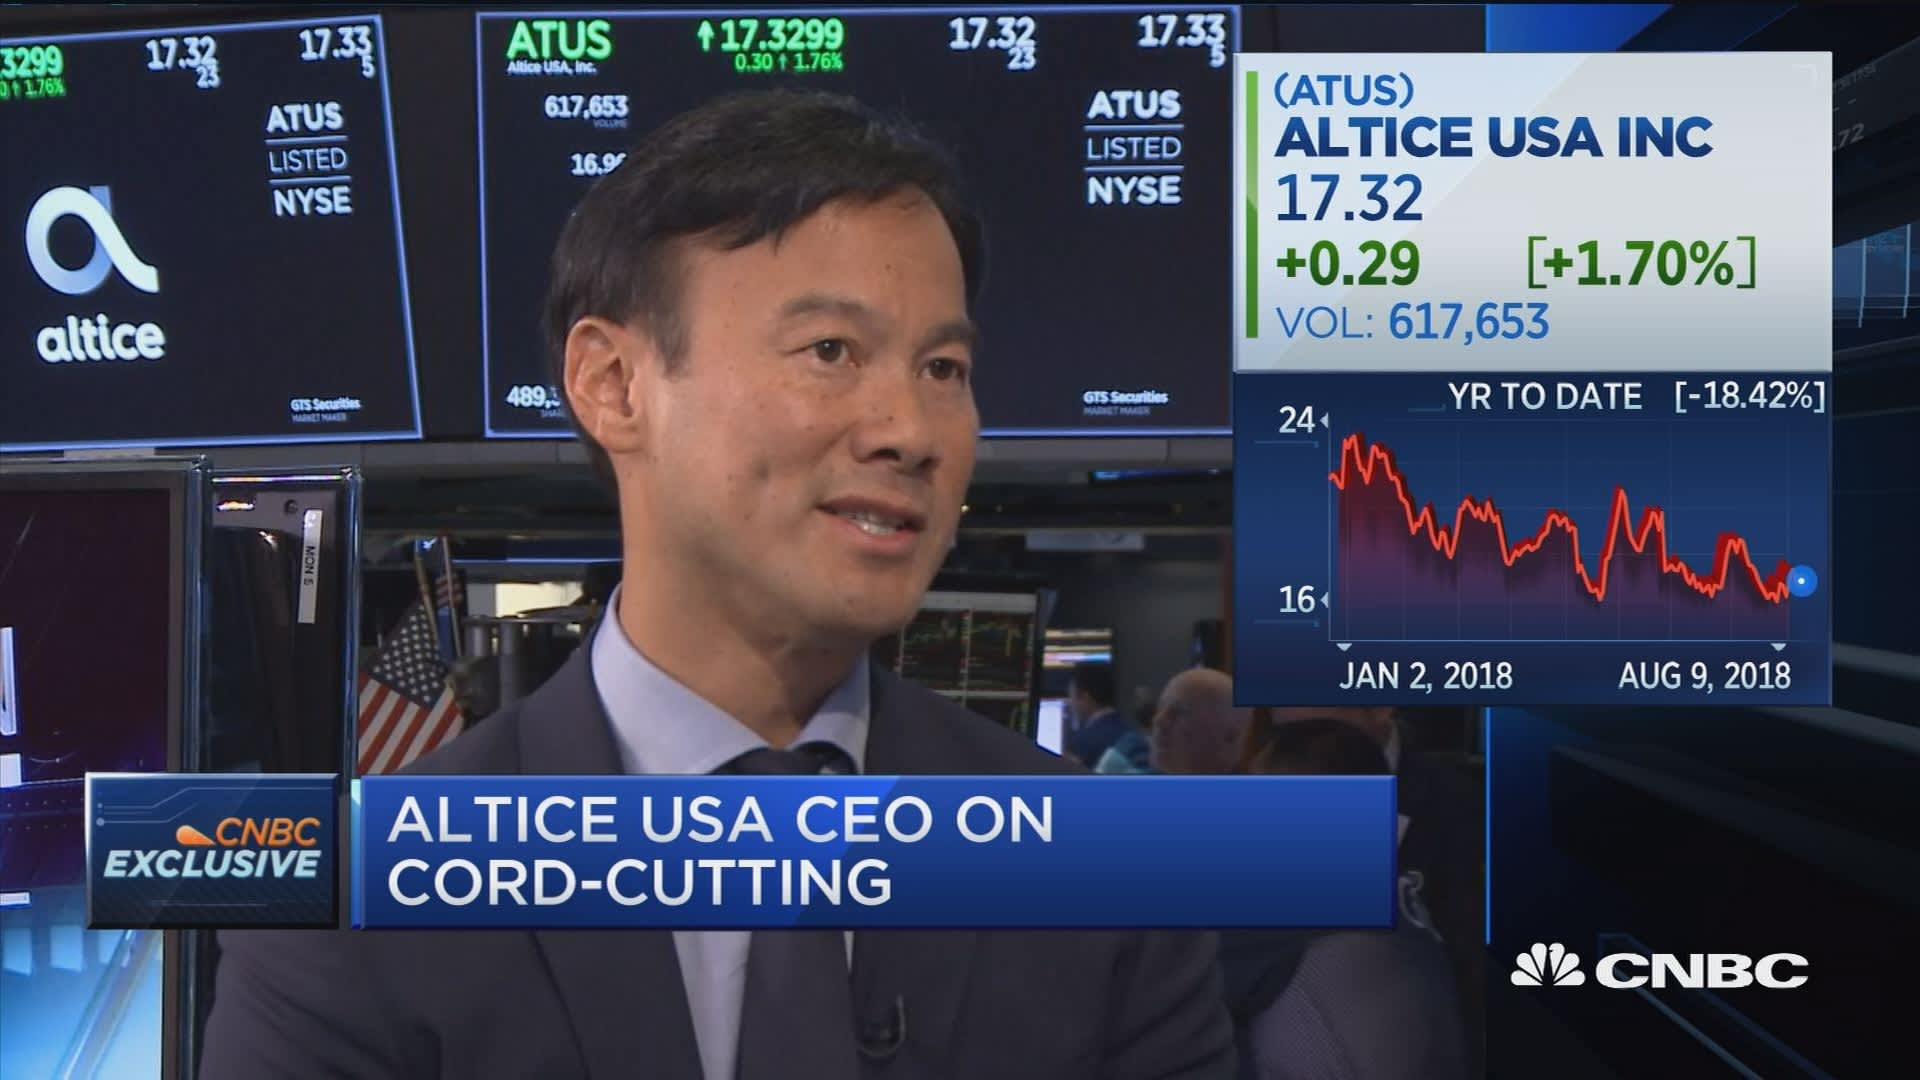 Here's why Altice USA just dropped $200 million on streaming video start-up Cheddar